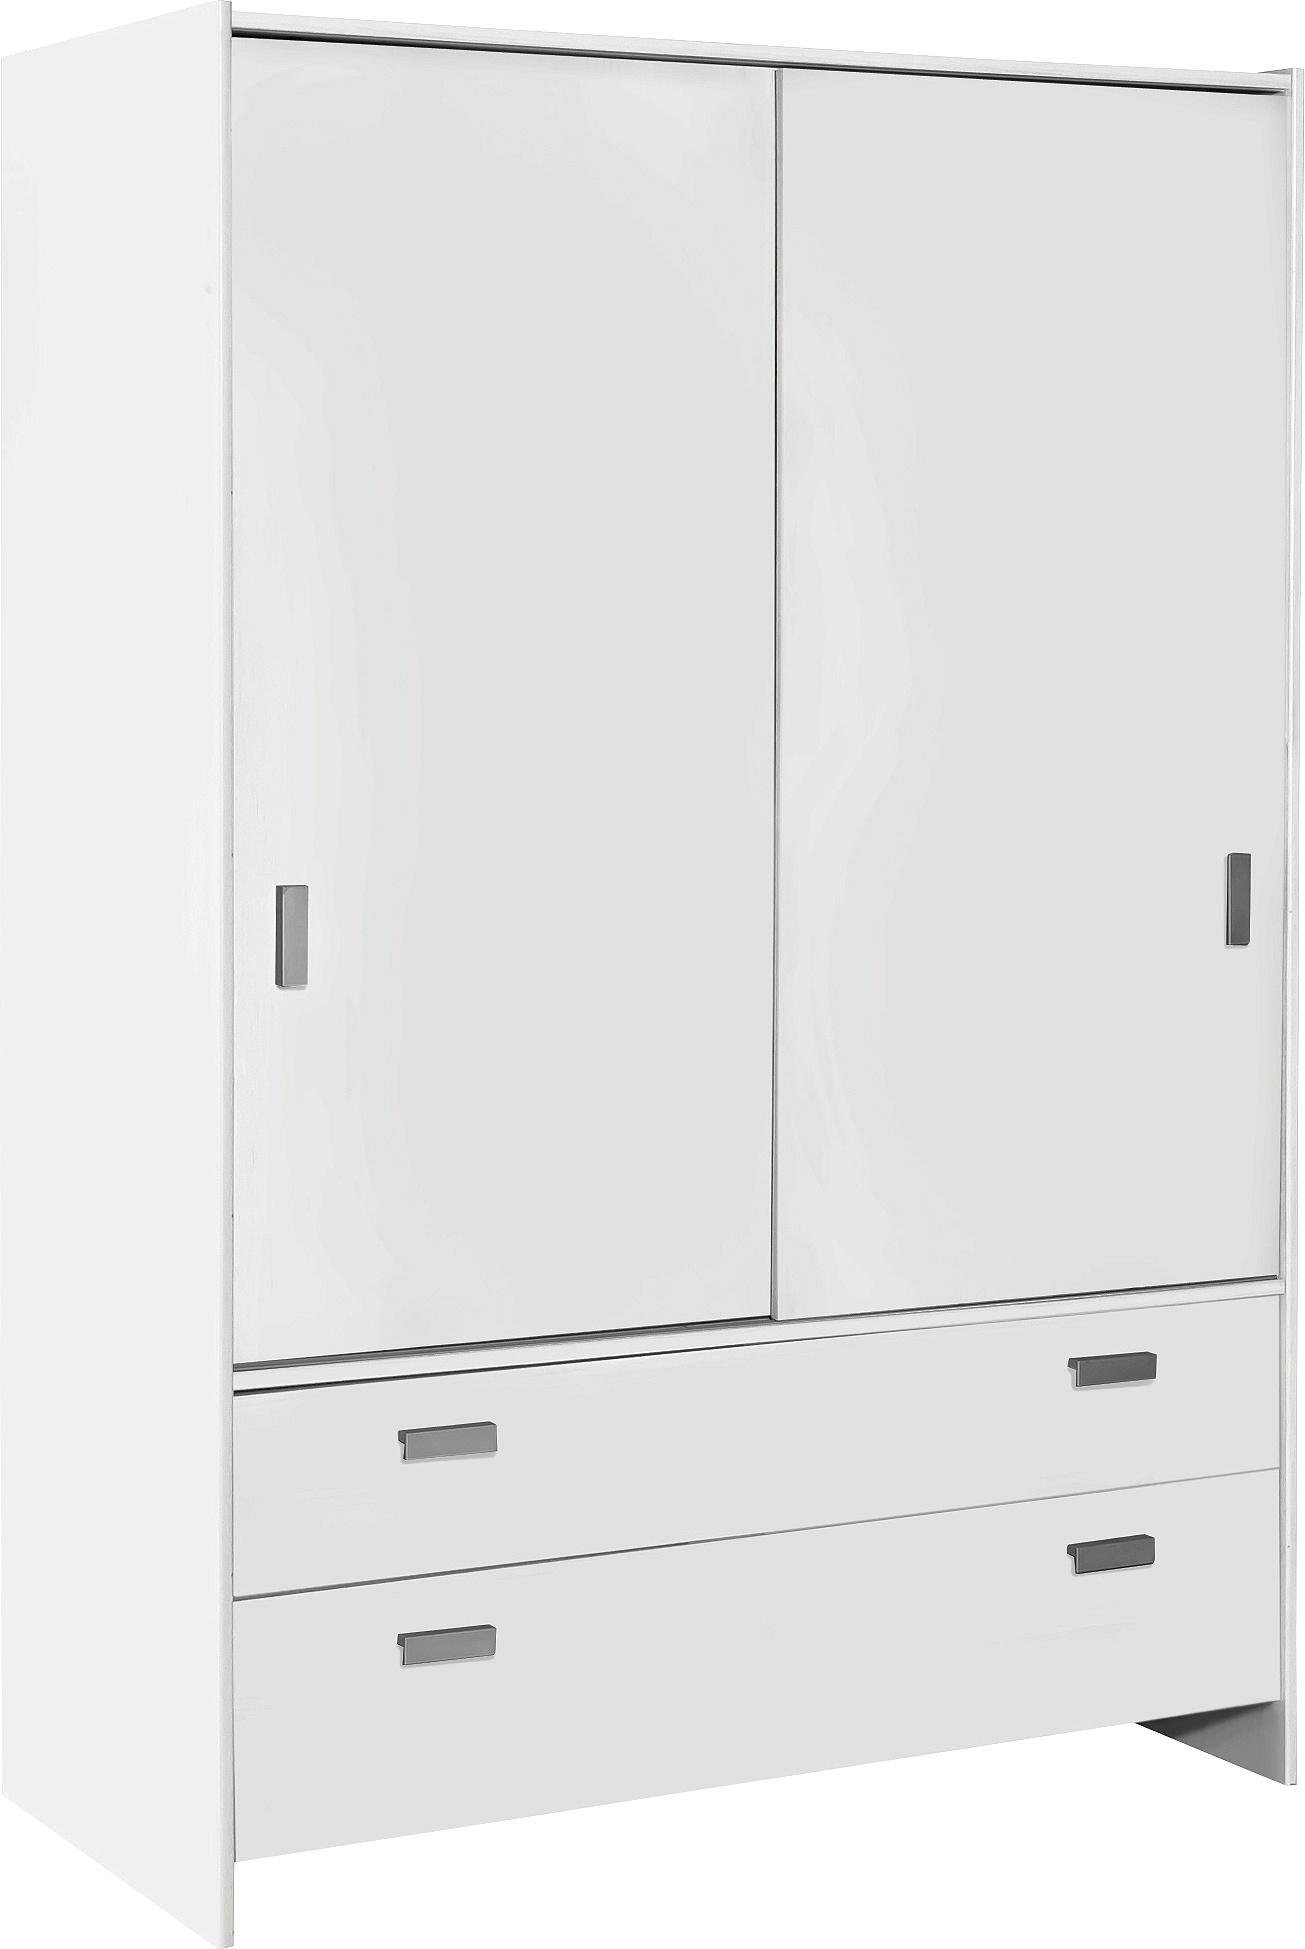 Buy Argos Home Capella 2 Door 2 Drawer Sliding Wardrobe - White